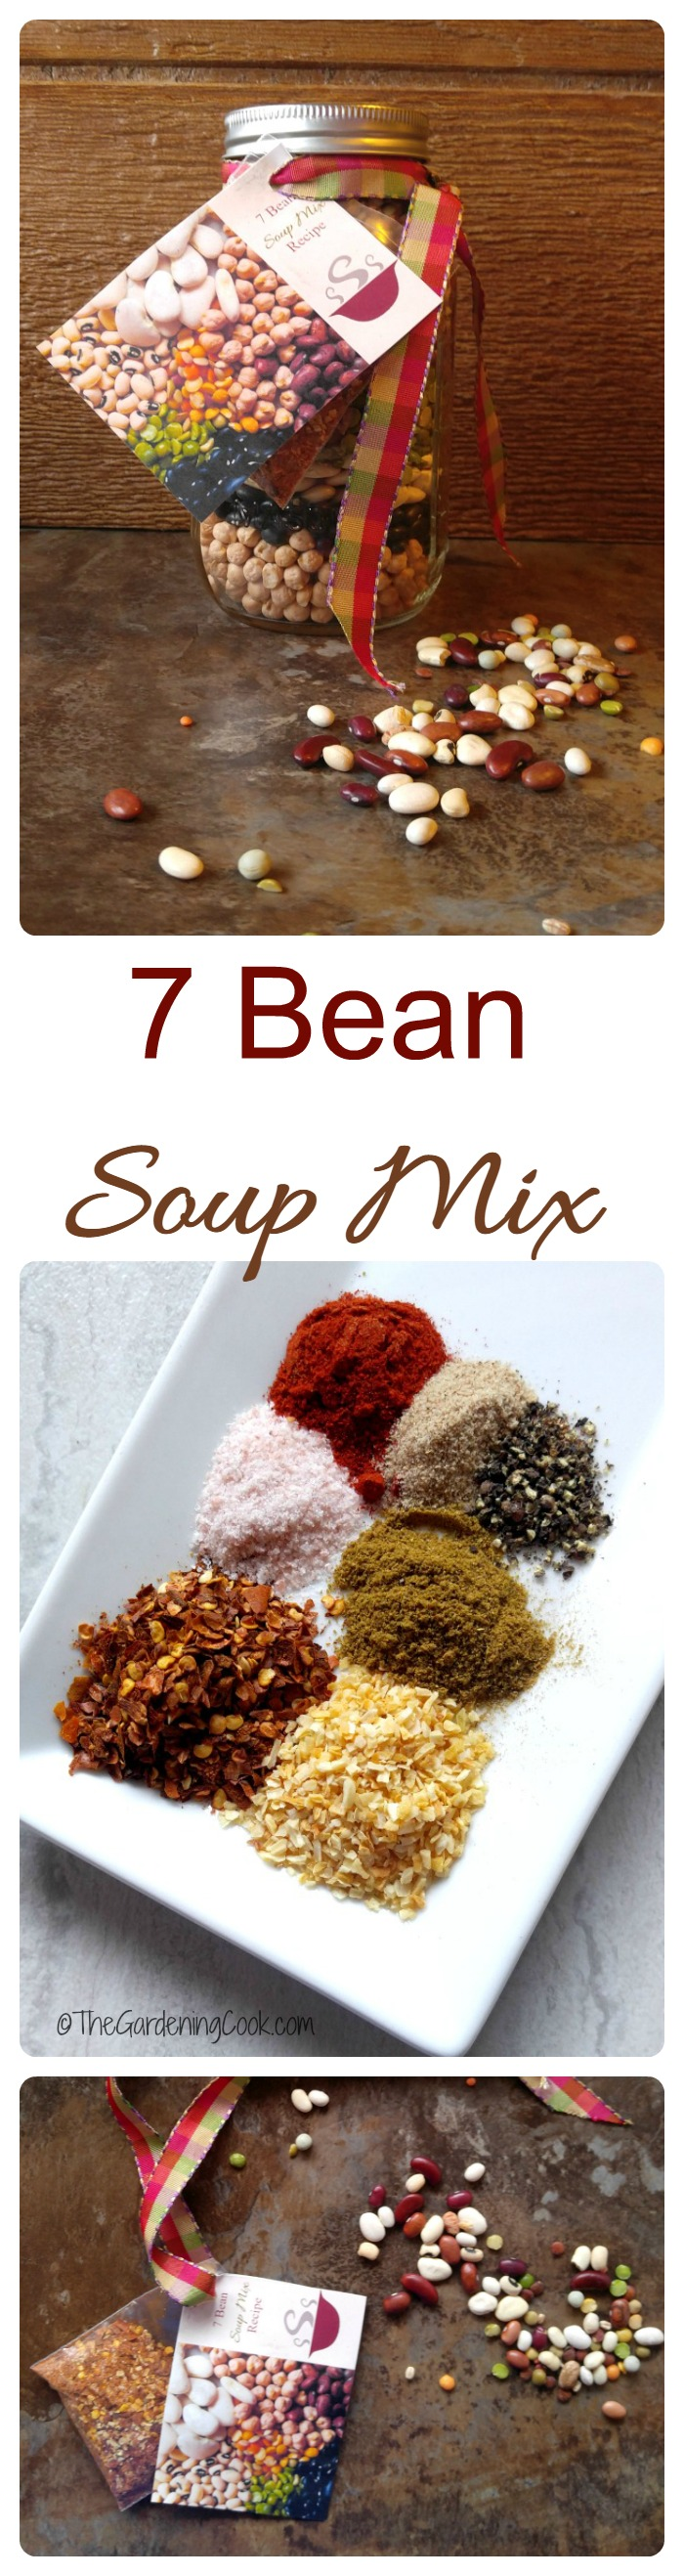 7 Bean Soup Mix plus Recipe